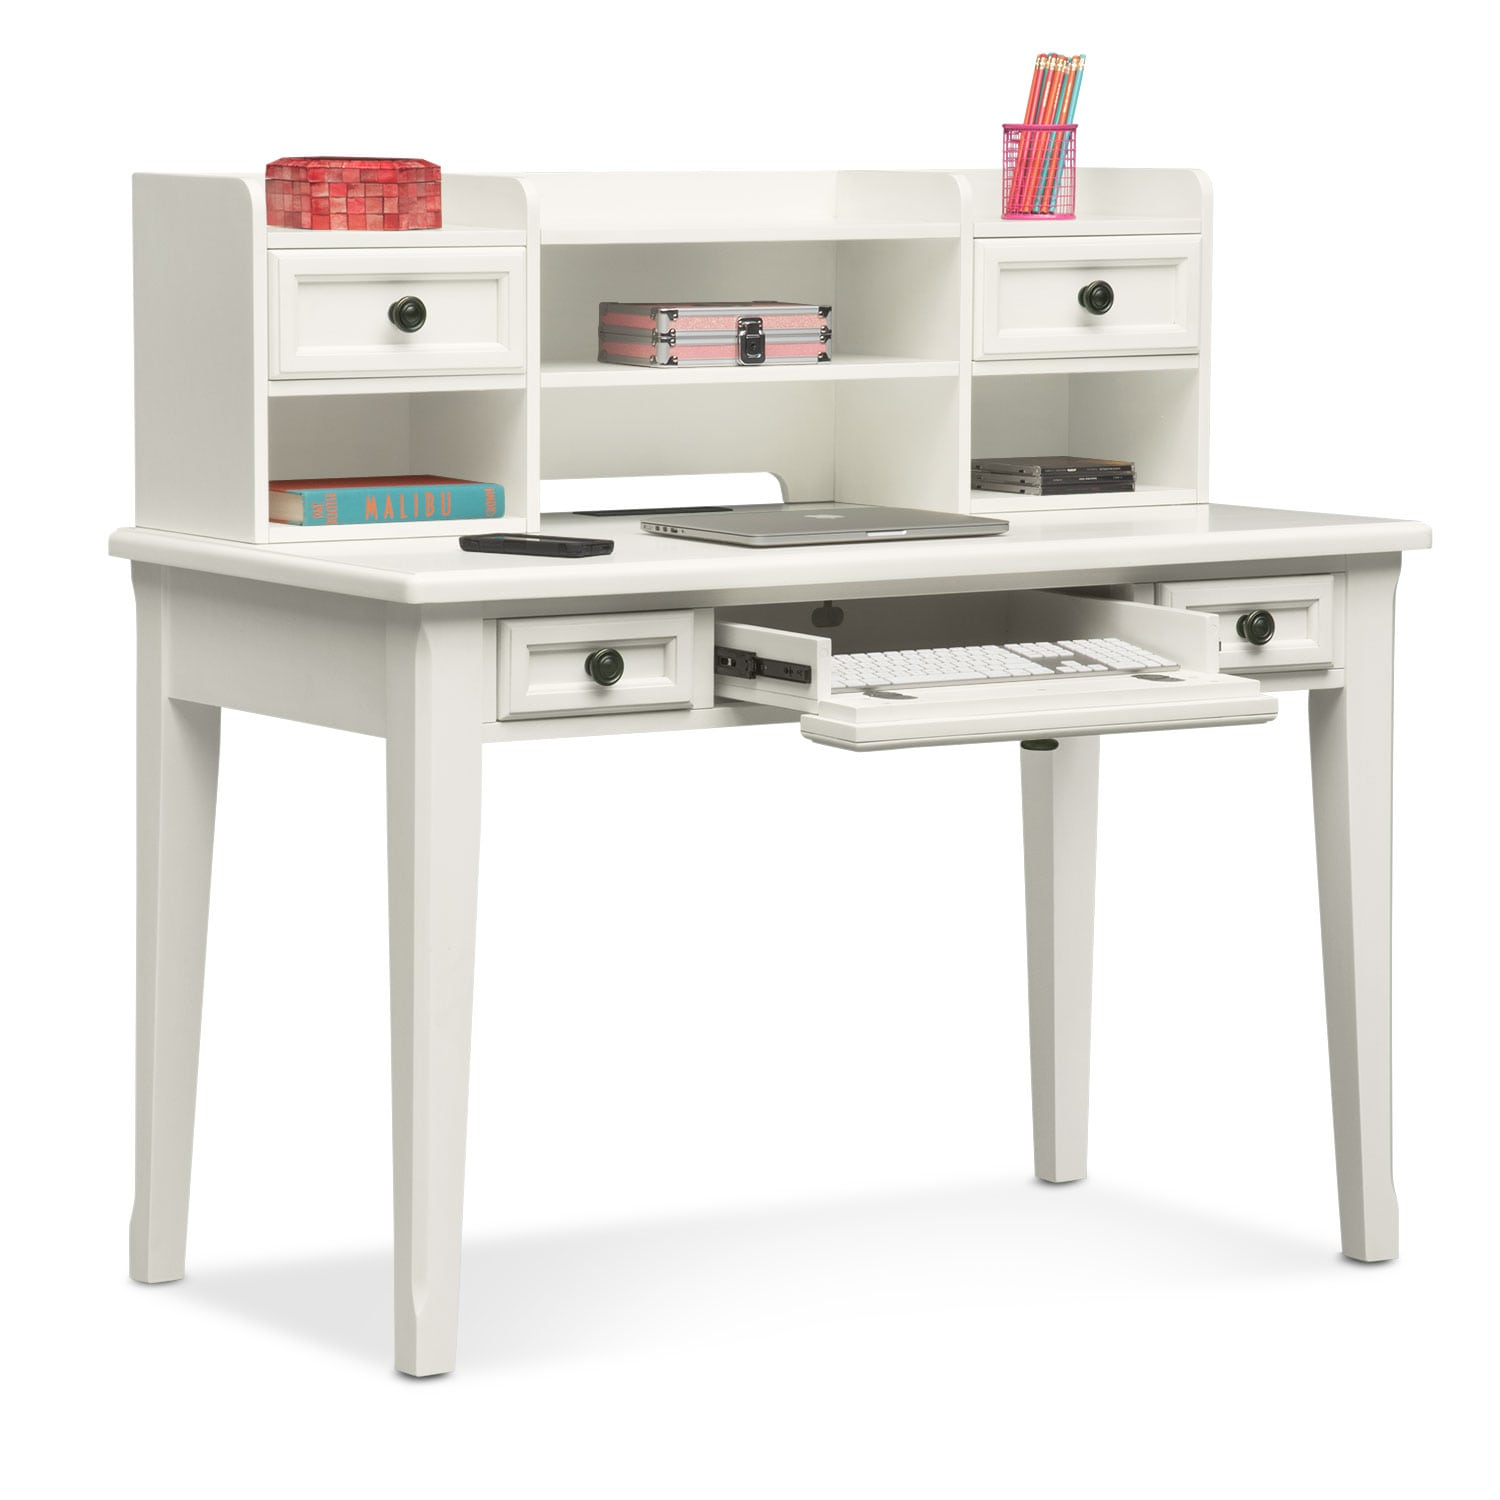 Bedroom Furniture - Hanover Youth Desk and Hutch - White